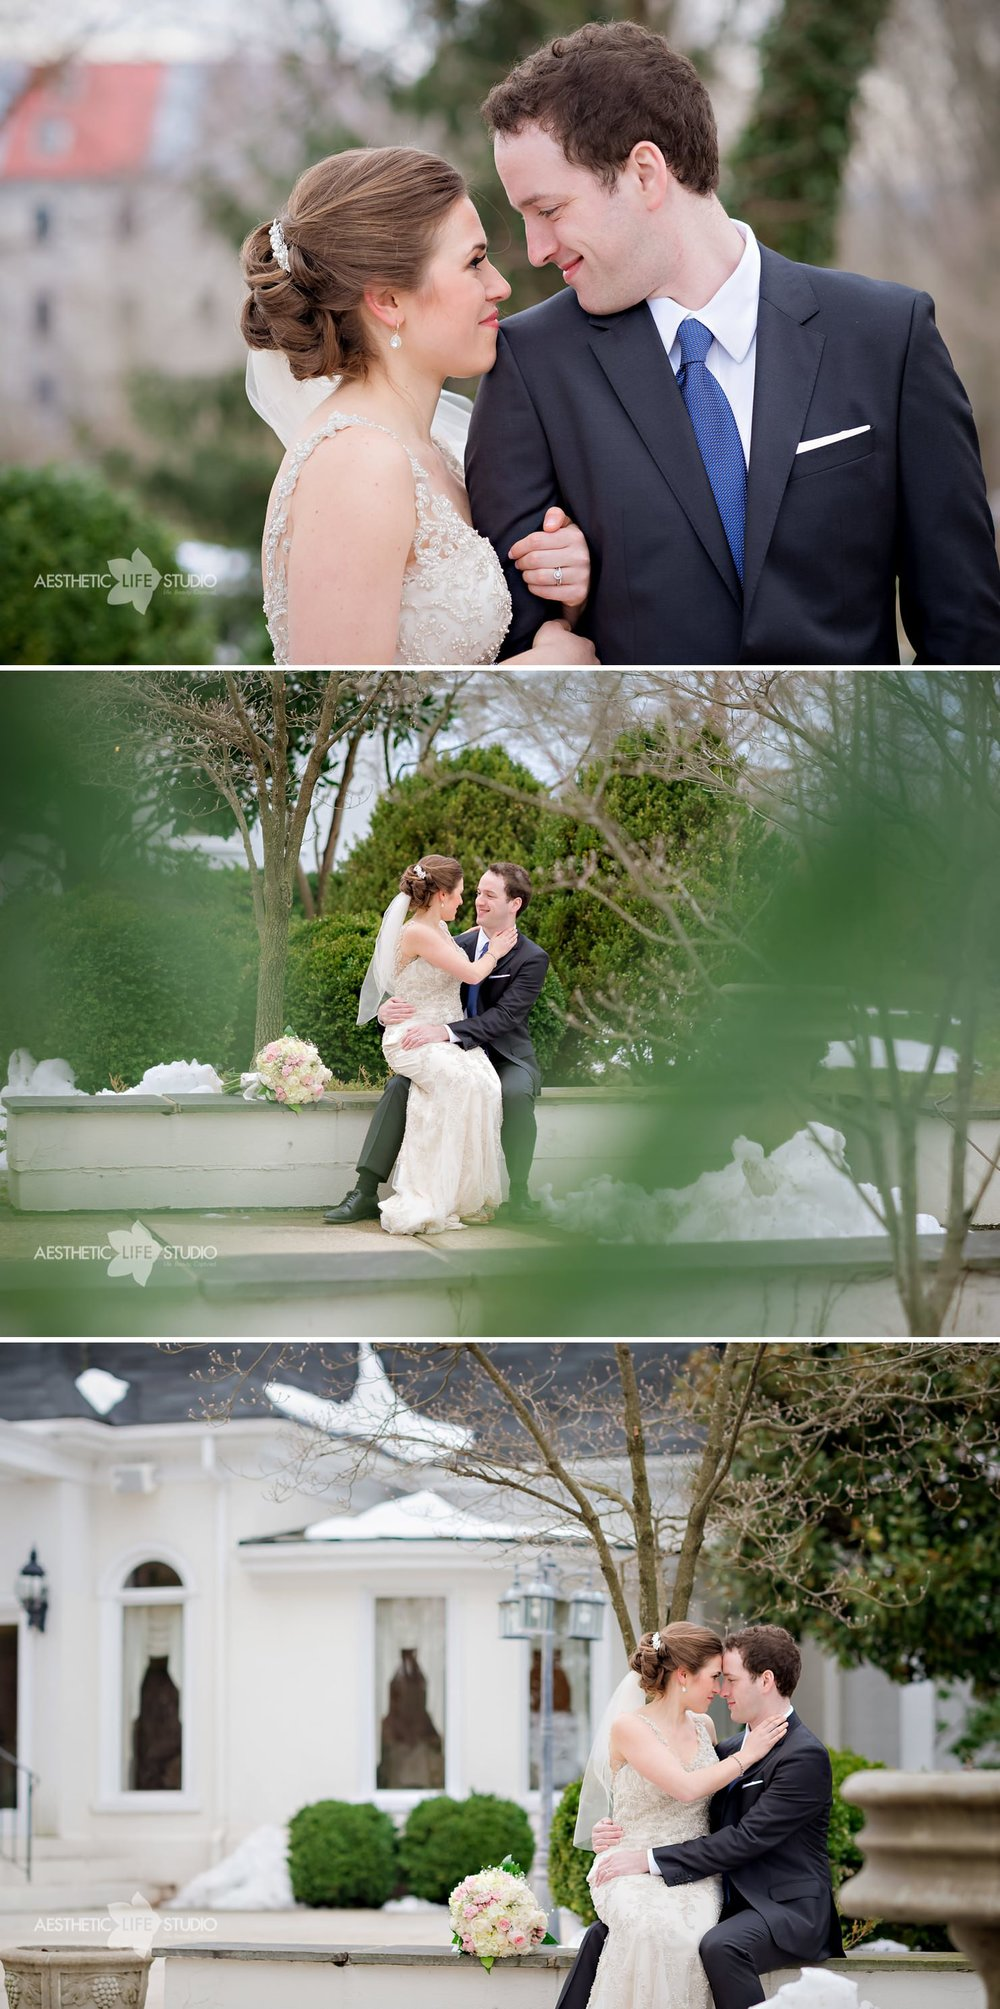 ceresville mansion wedding 023.jpg